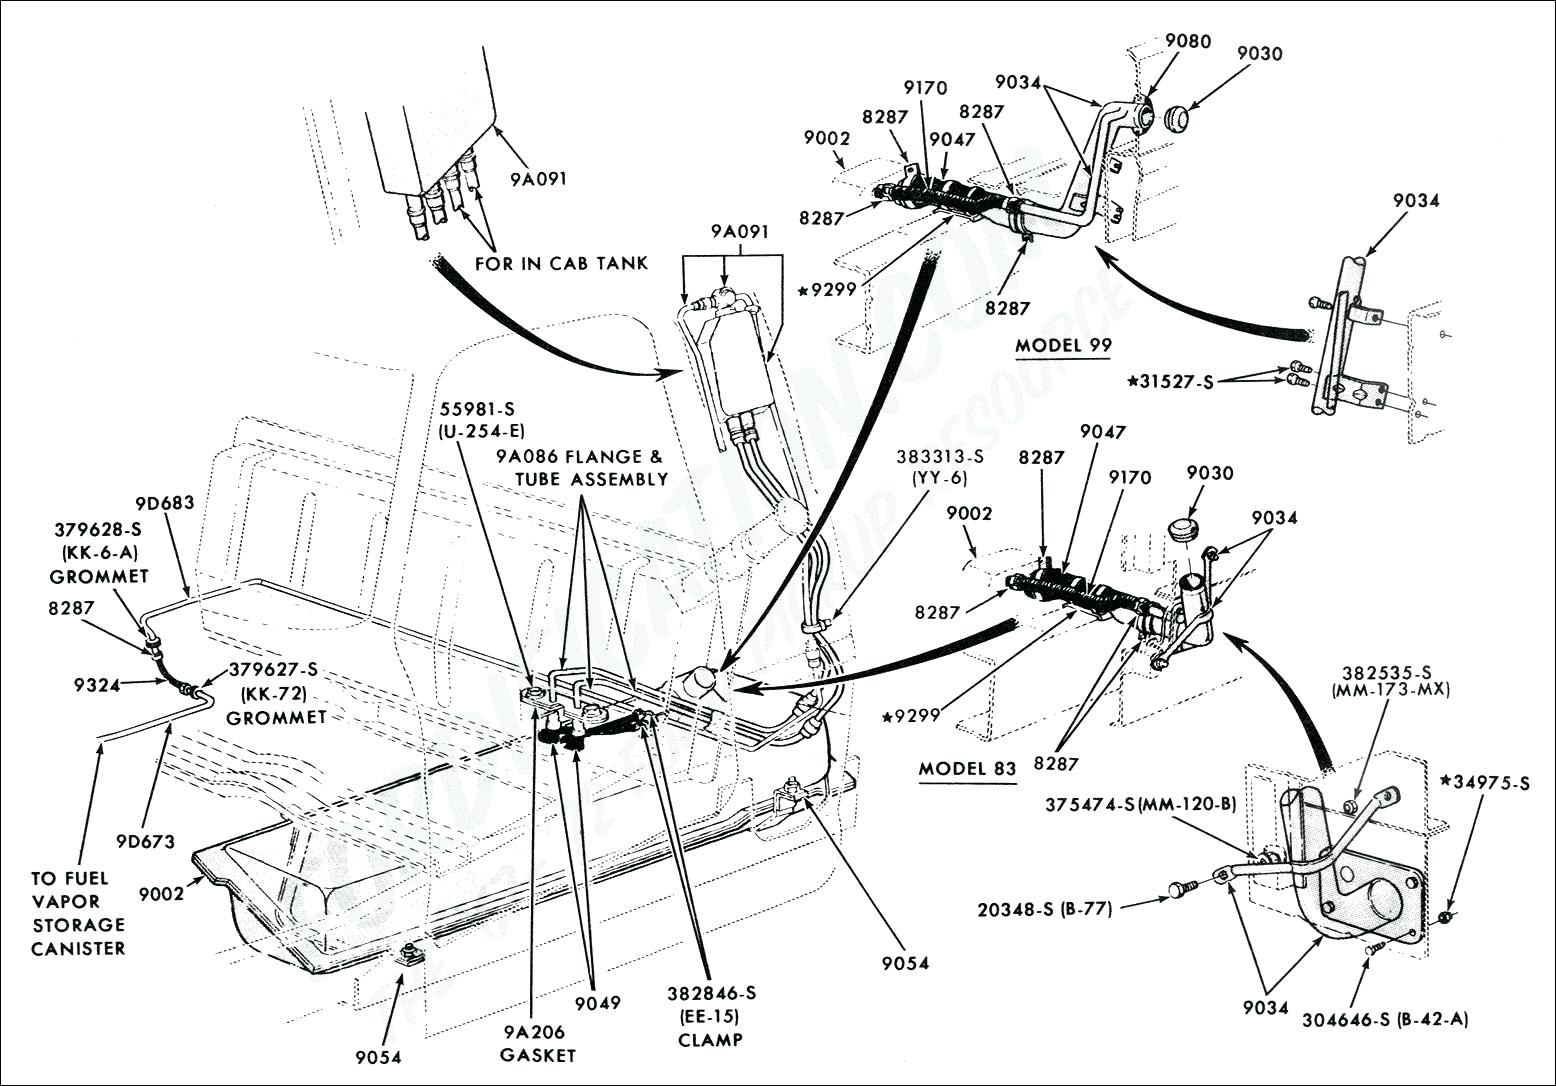 1556x1086 spark plug wiring diagram for ford 1990 f 150 engine awesome 4 6